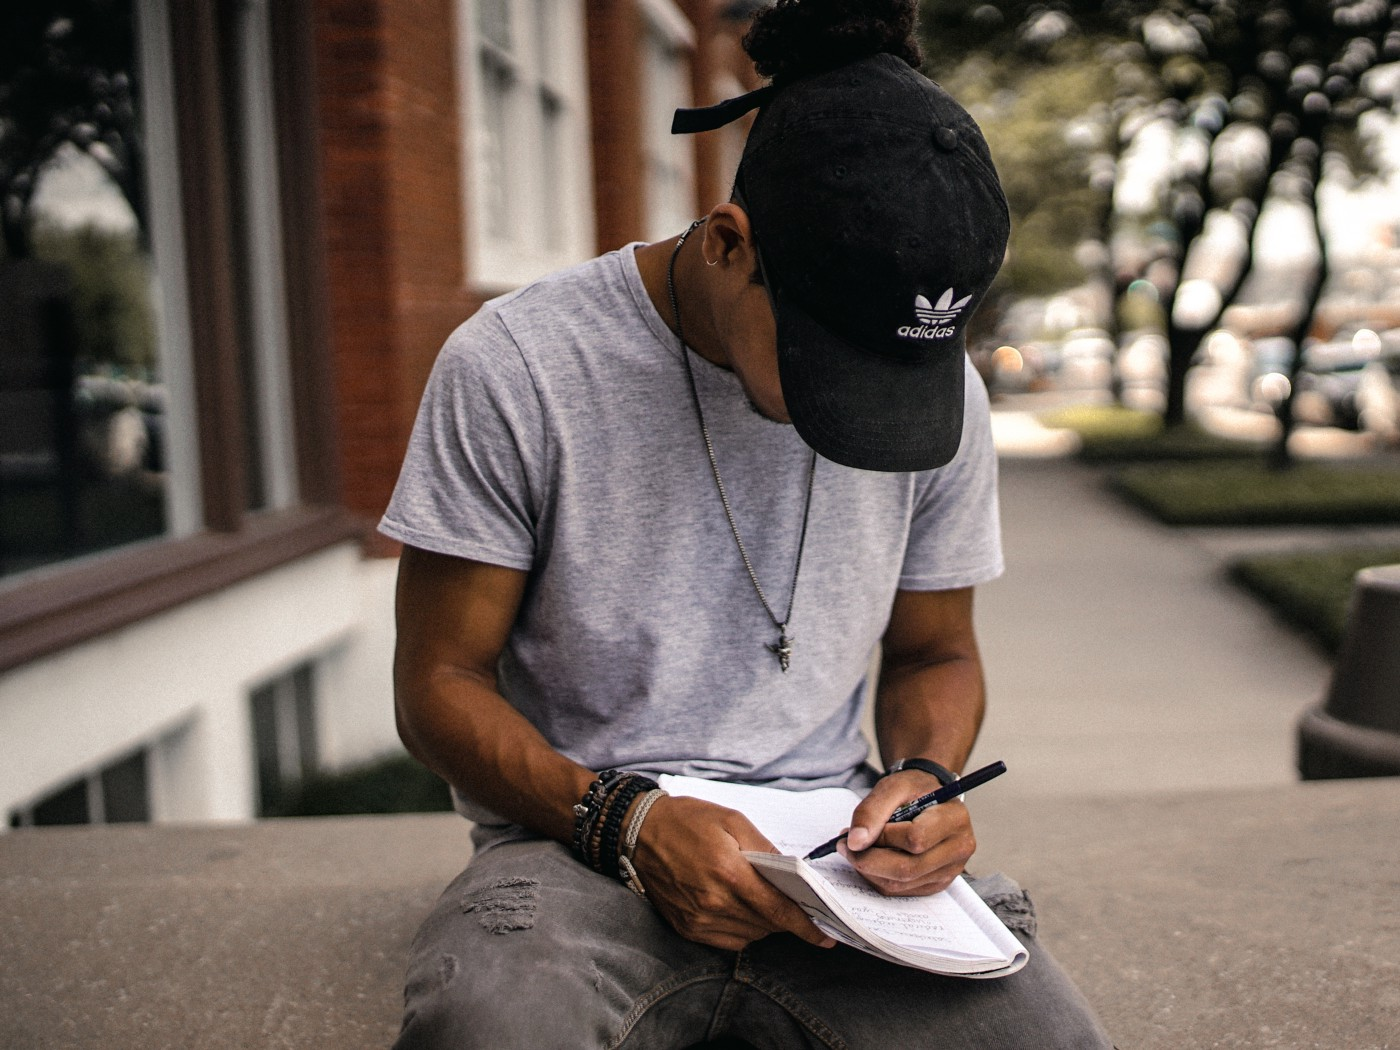 Male writing in a notebook